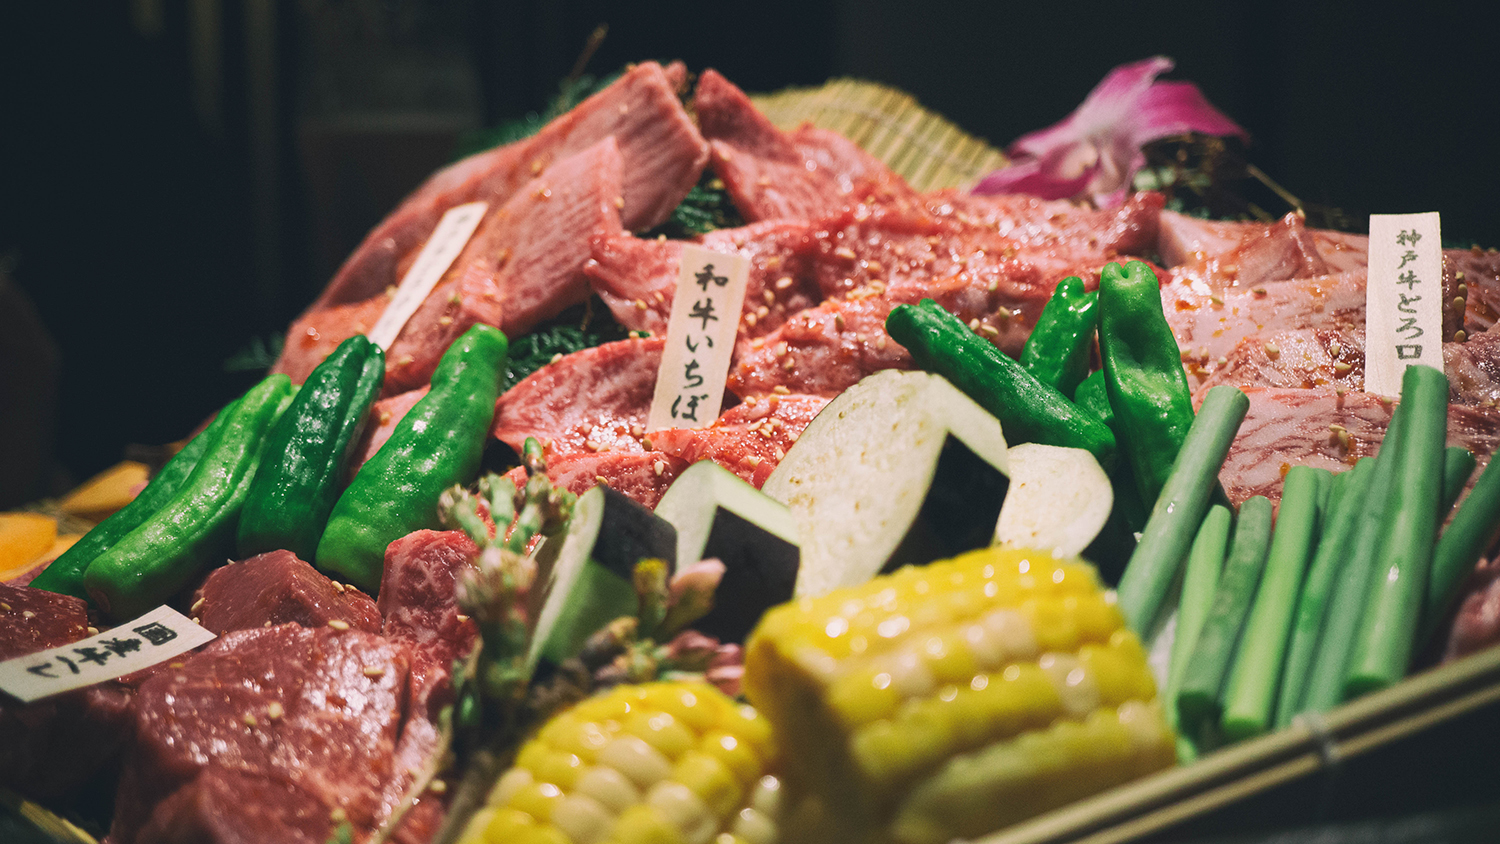 Our gigantic basket of grillable things.